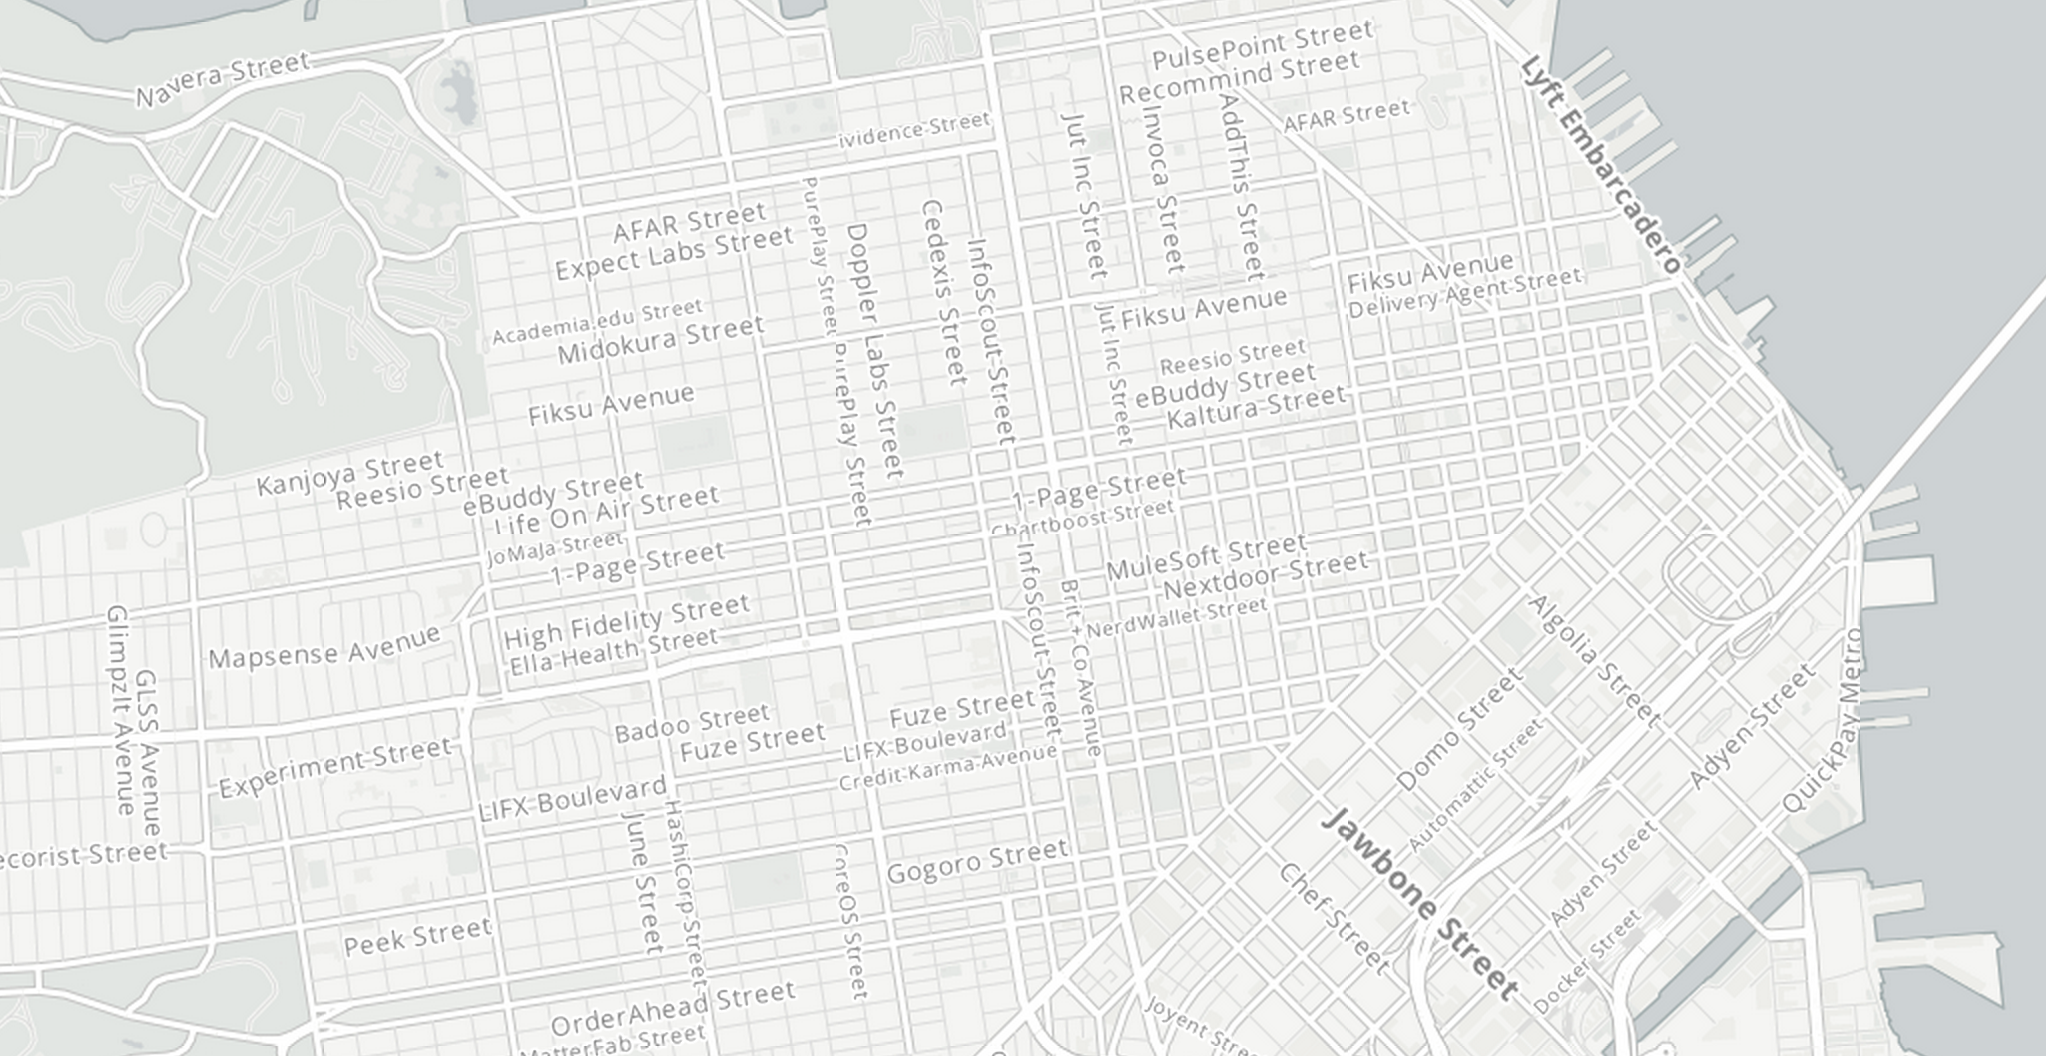 RT @TheNextWeb: See San Francisco reimagined as a startup map http://t.co/IDXFTHTiEo http://t.co/4cITxamnWJ